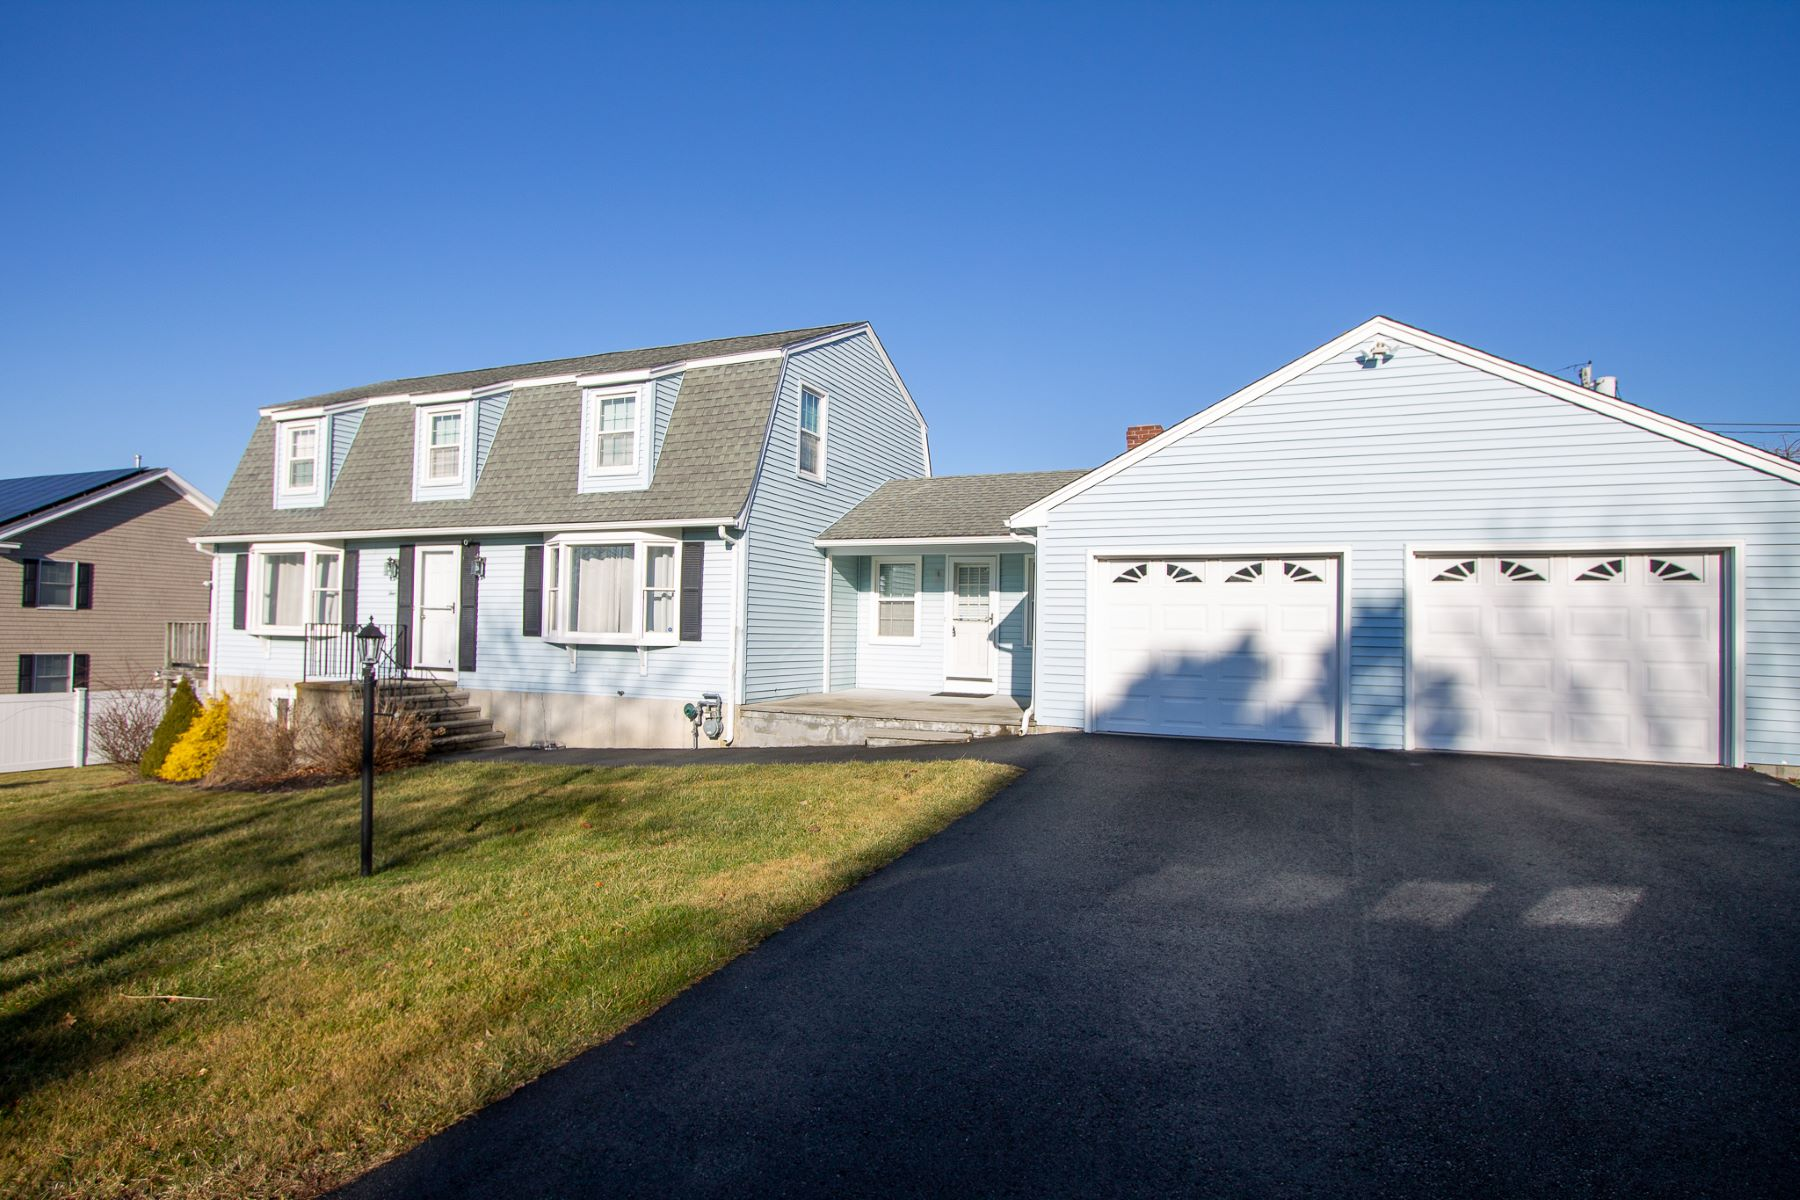 Single Family Homes for Sale at Cul-de-Sac Turnkey Residence on Easton's Point 4 Maloney Lane Middletown, Rhode Island 02842 United States